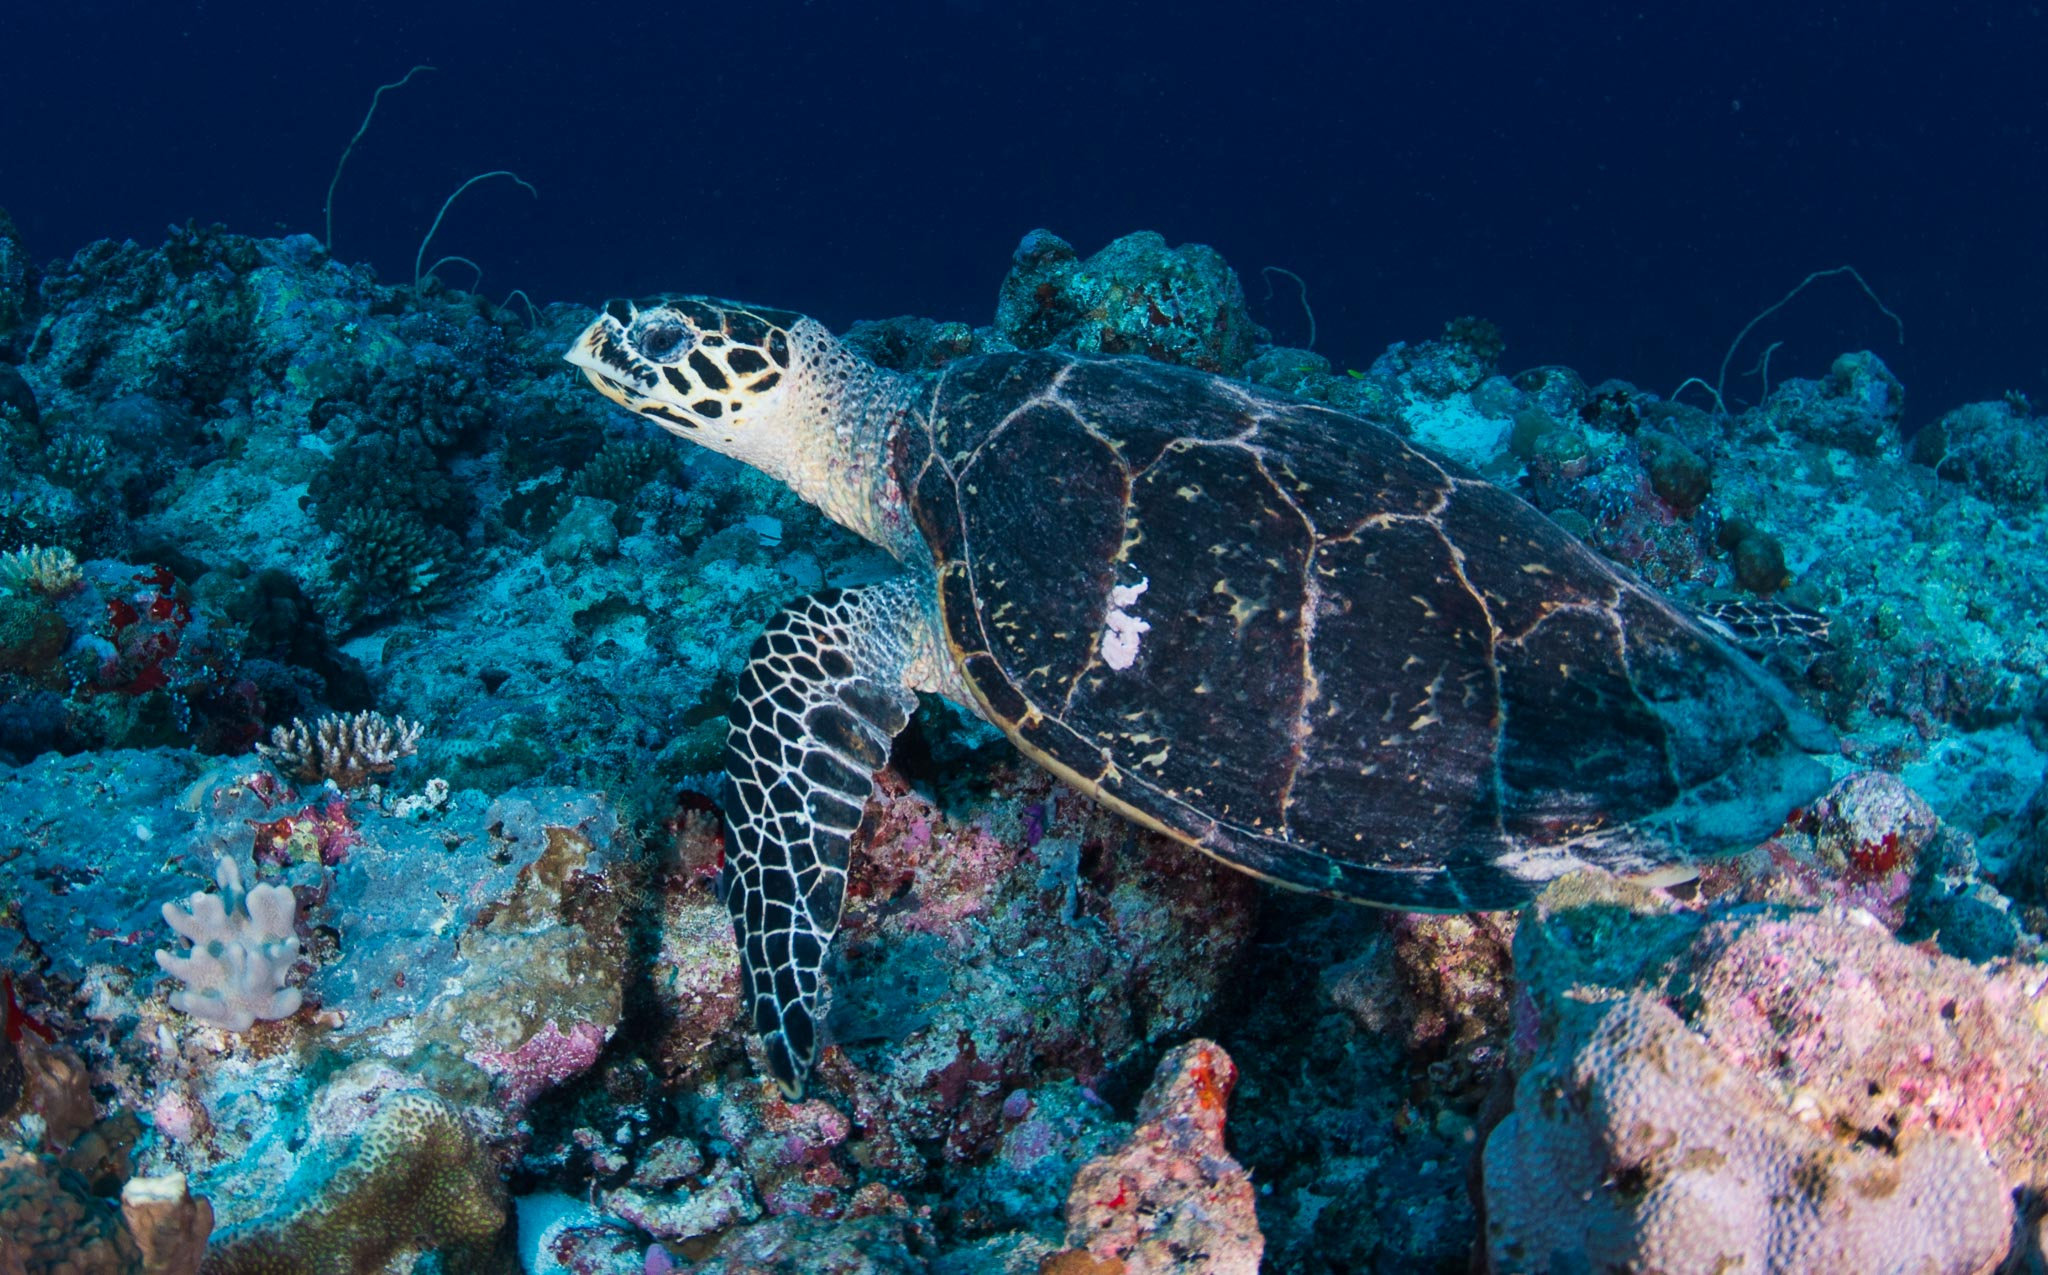 Turtle Hawksbill Eating Palau